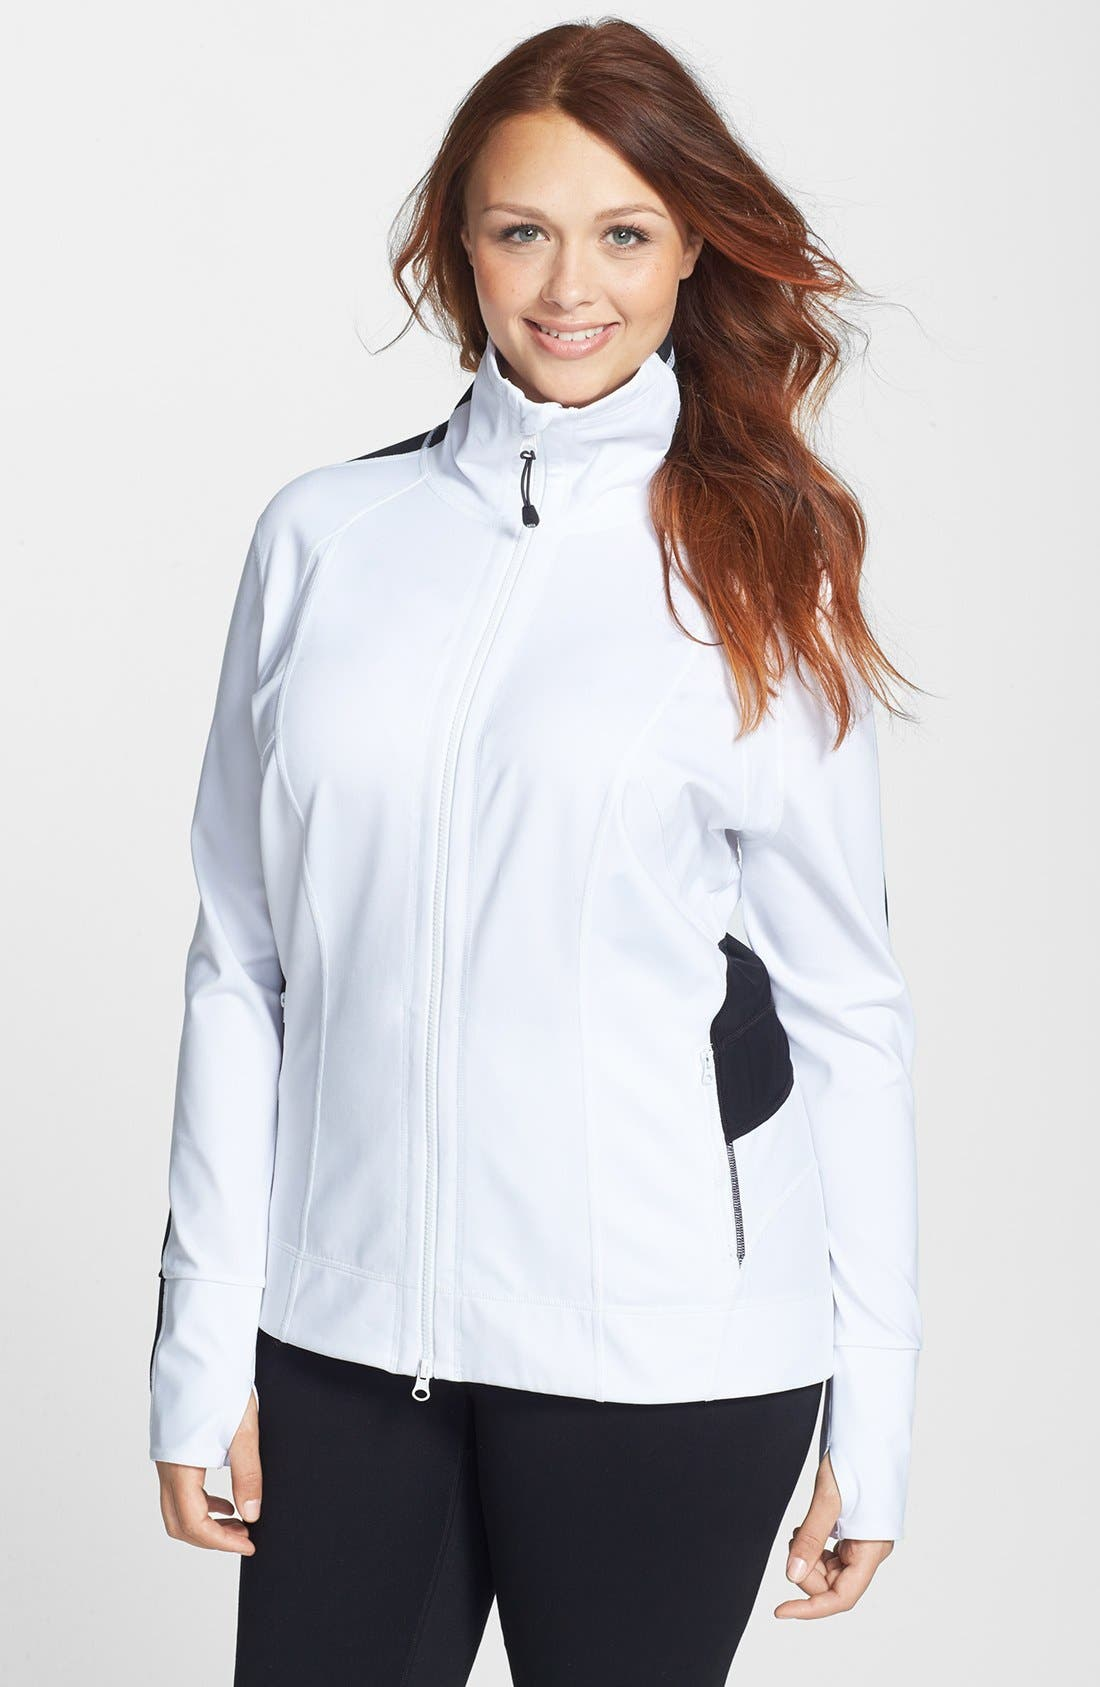 Main Image - Zella 'Bliss' Colorblock Jacket (Plus Size)